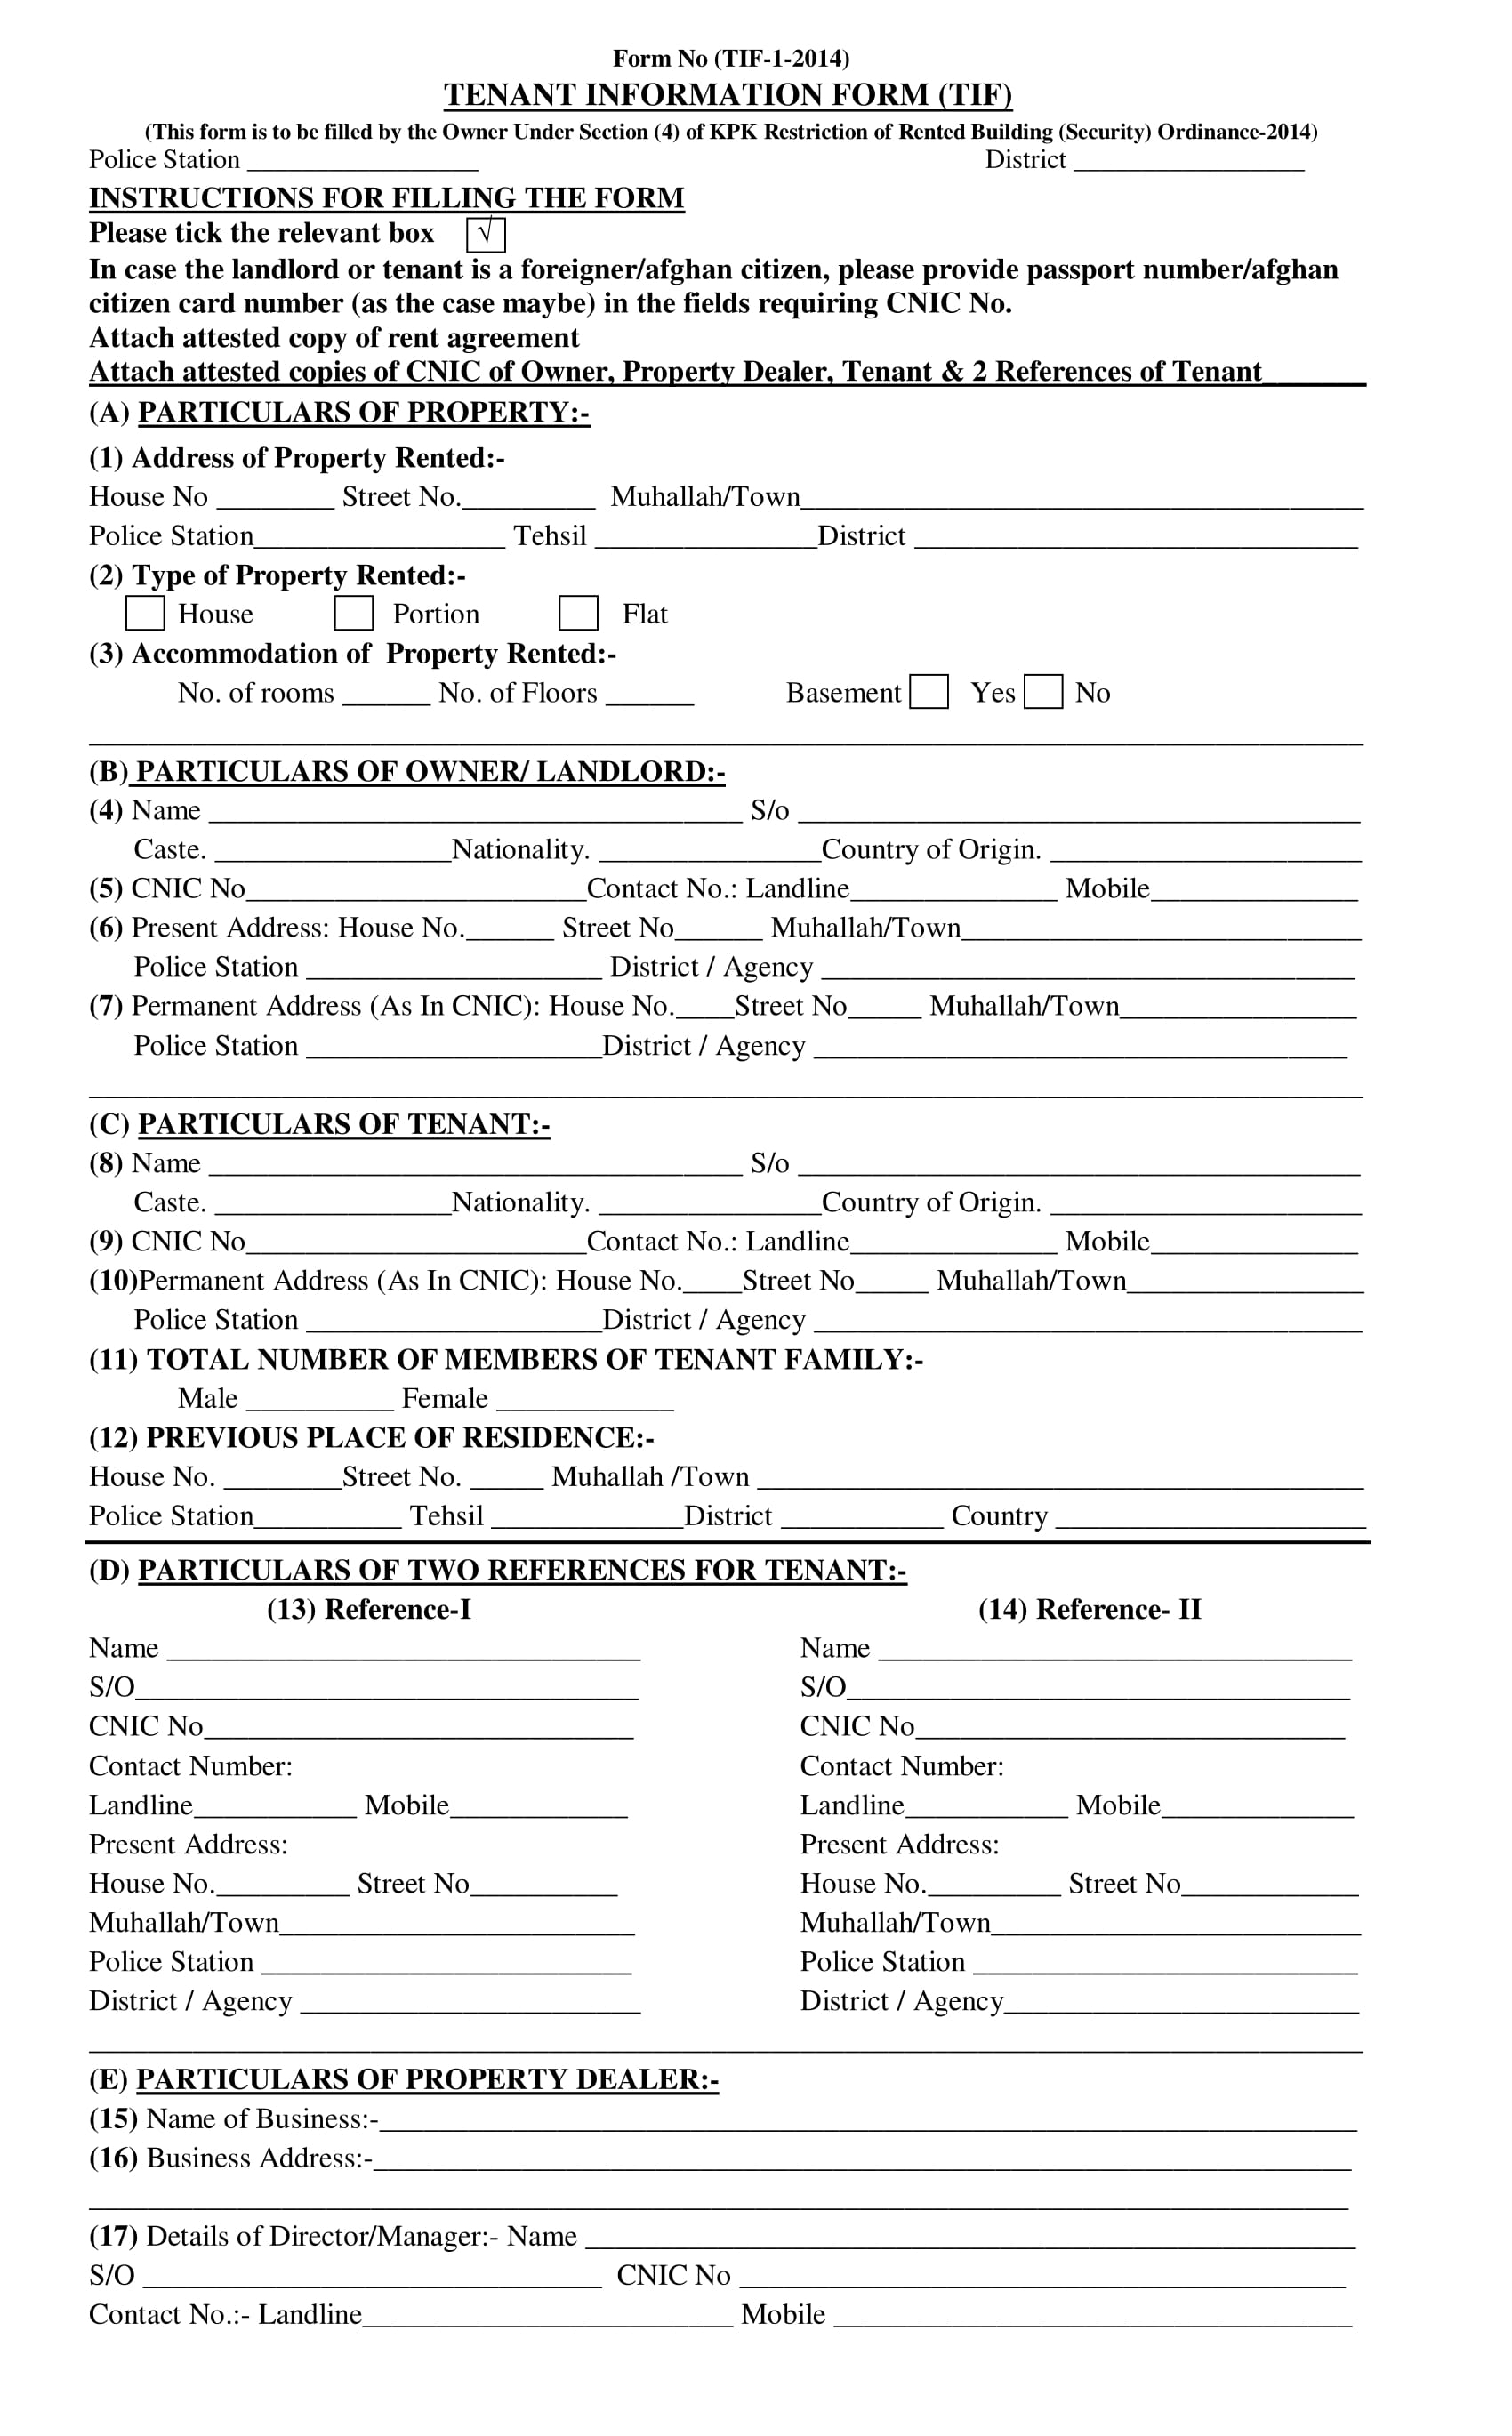 new tenant information form 1